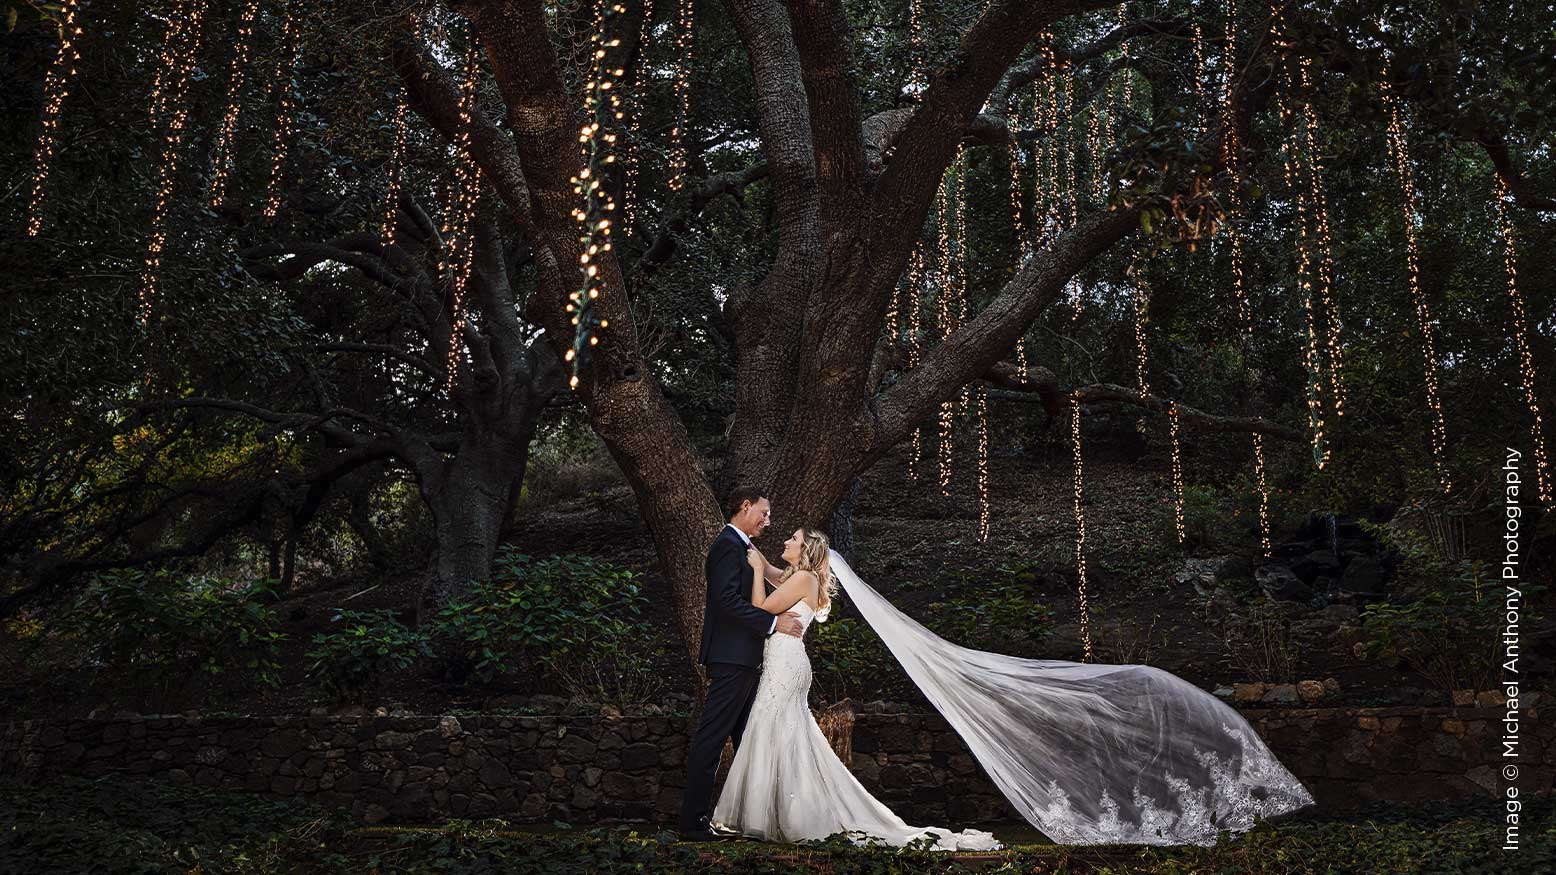 Post-Production Workflow for Wedding Photographers